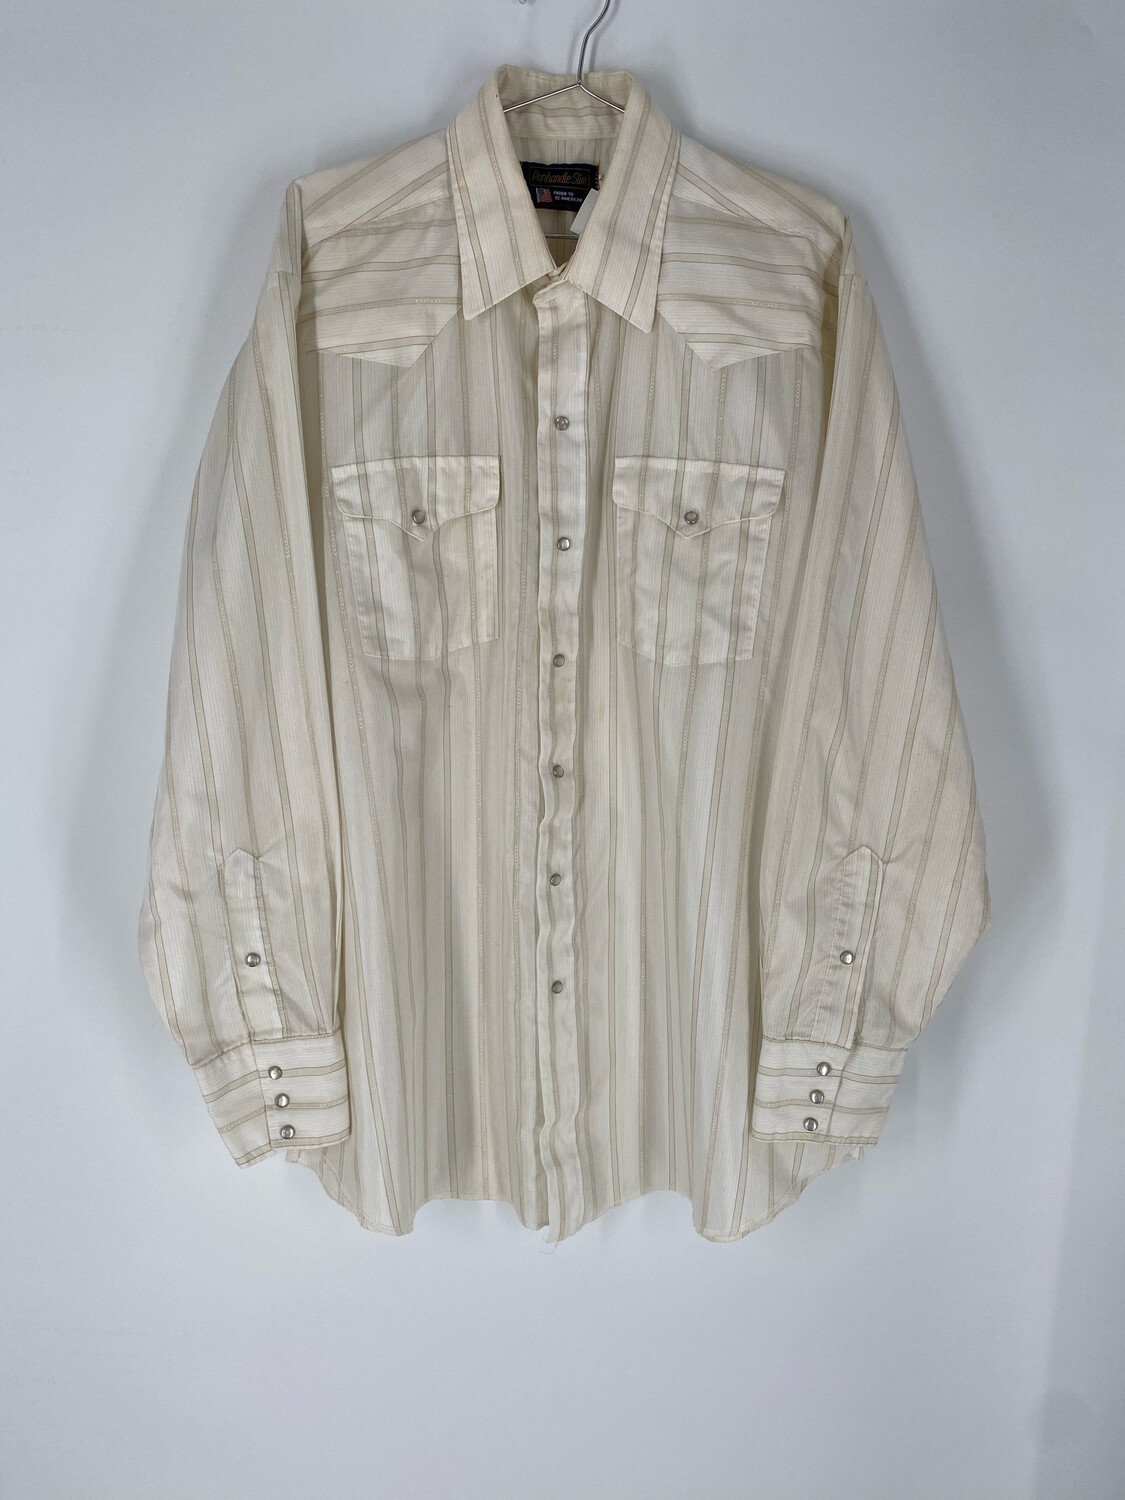 Panhandle Slim Striped Button Up Size Large